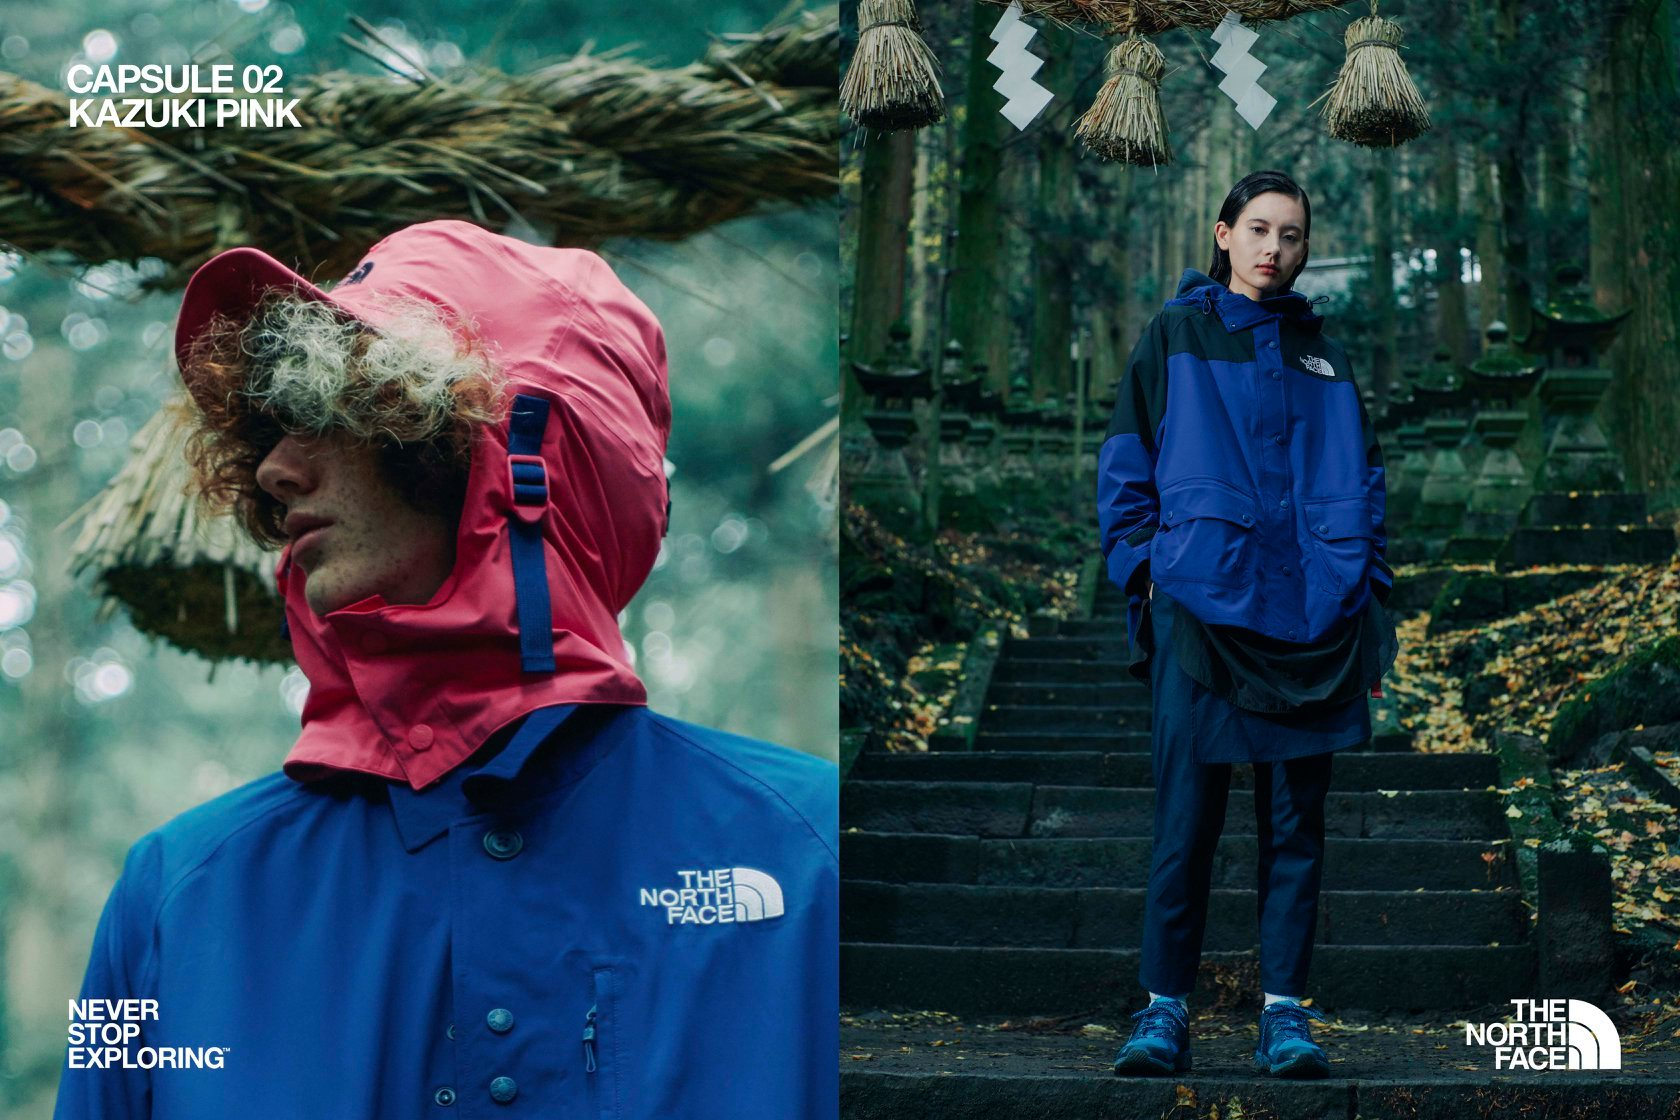 The North Face UE SS2020 02 KAZUKI PINK